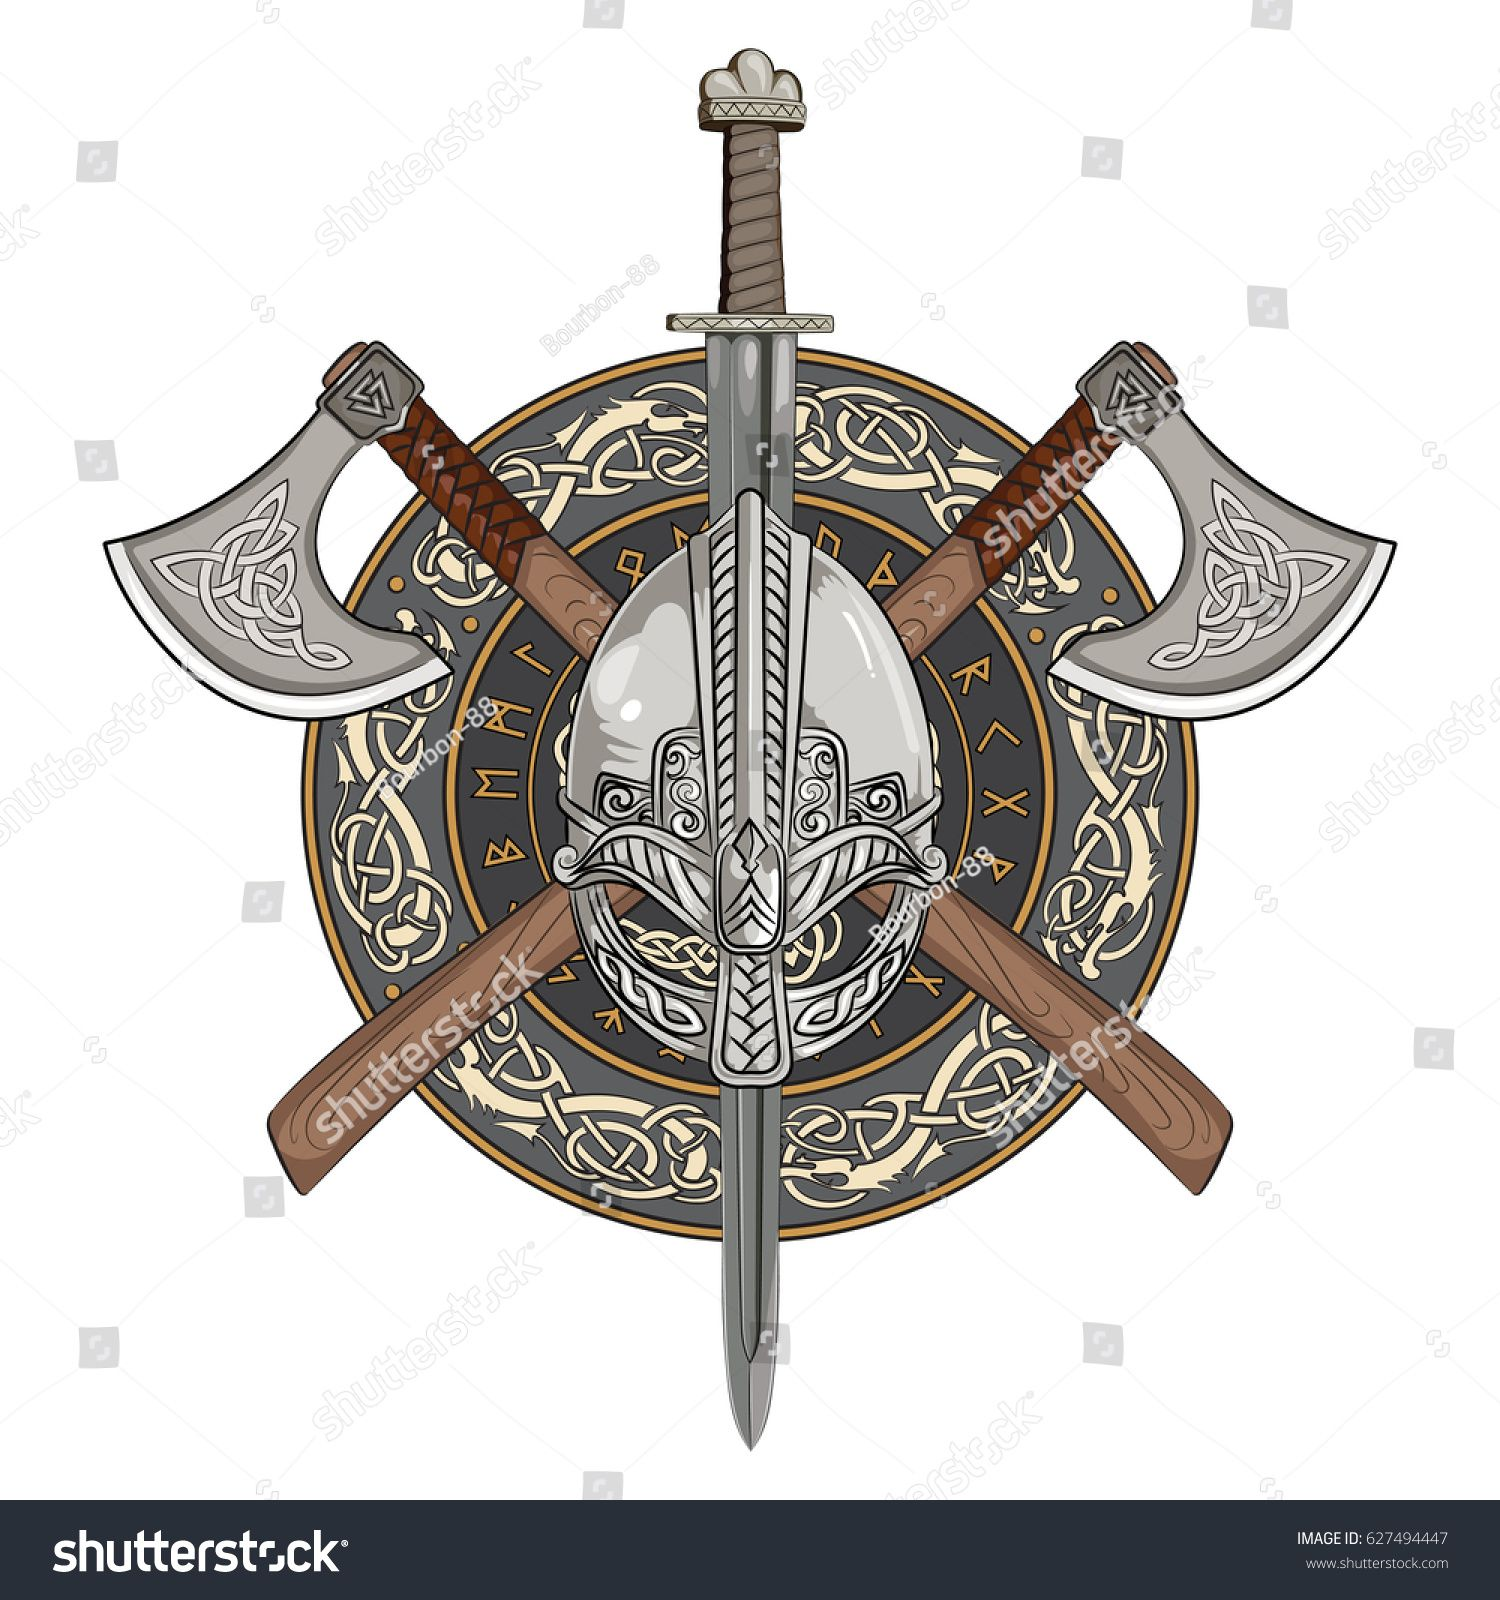 Viking Helmet Crossed Viking Axes And In A Wreath Of Scandinavian Pattern And Viking Shield Vector Illustration Viking Helmet Viking Shield Vikings